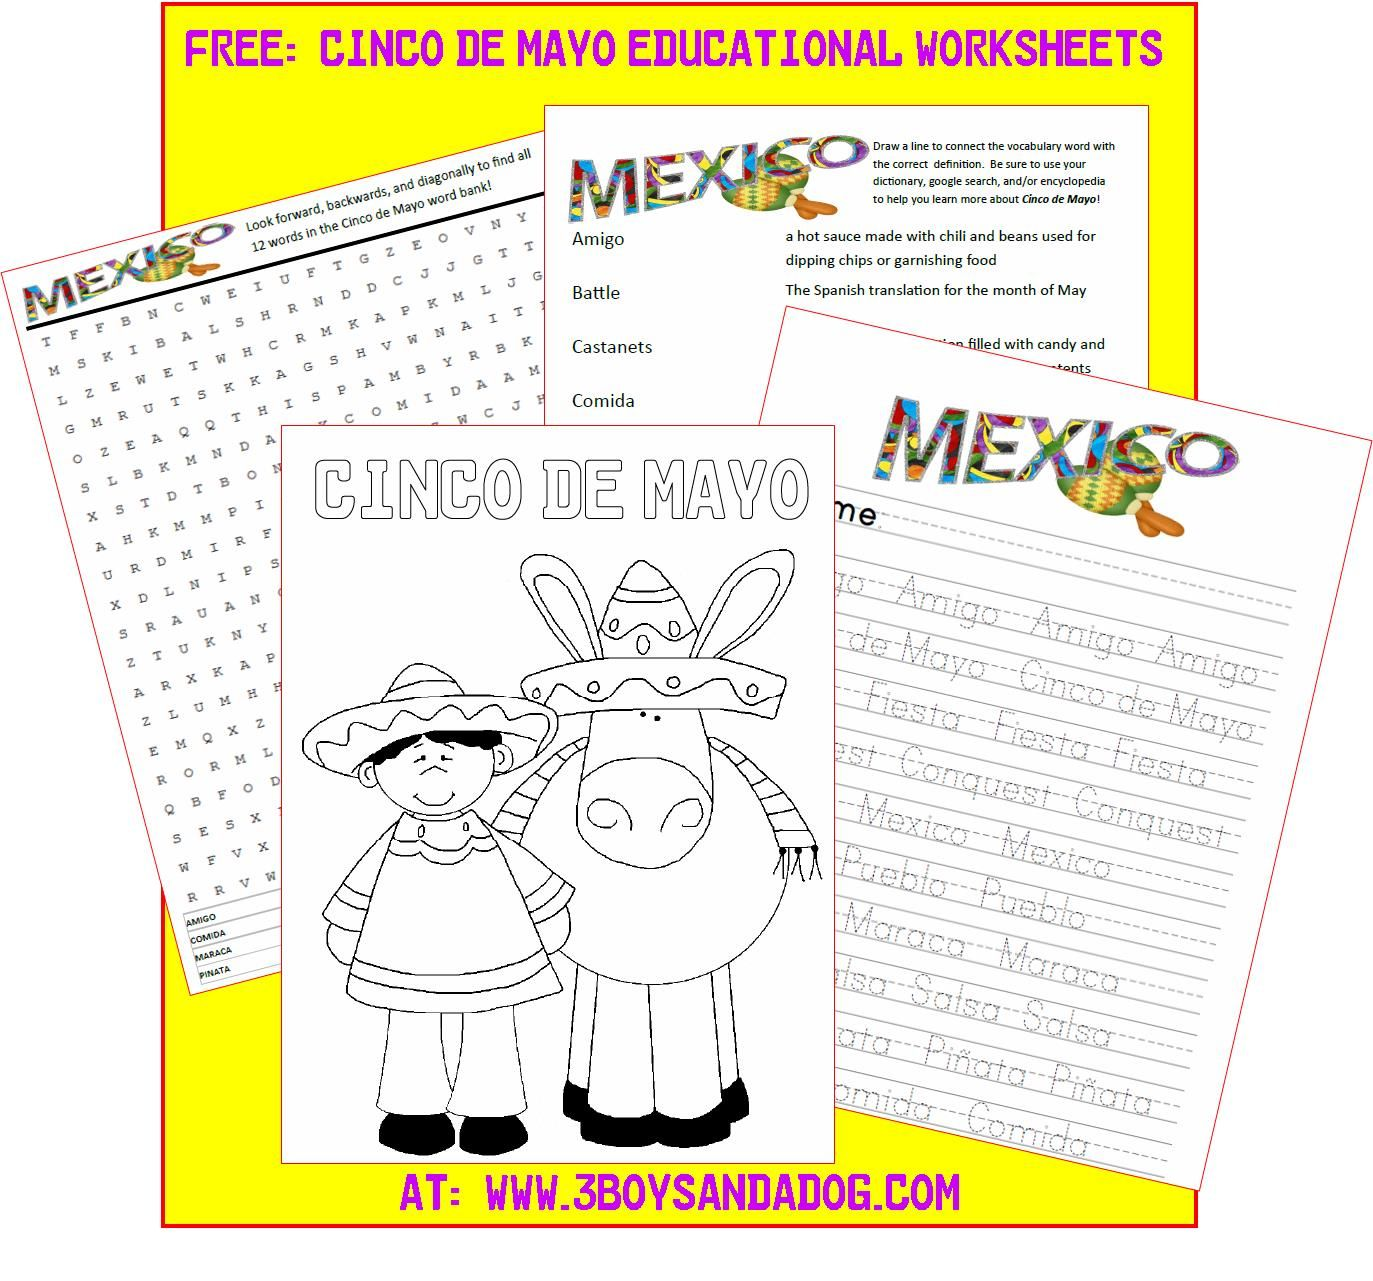 hight resolution of Hispanic Heritage Month Worksheets For Kids   Printable Worksheets and  Activities for Teachers